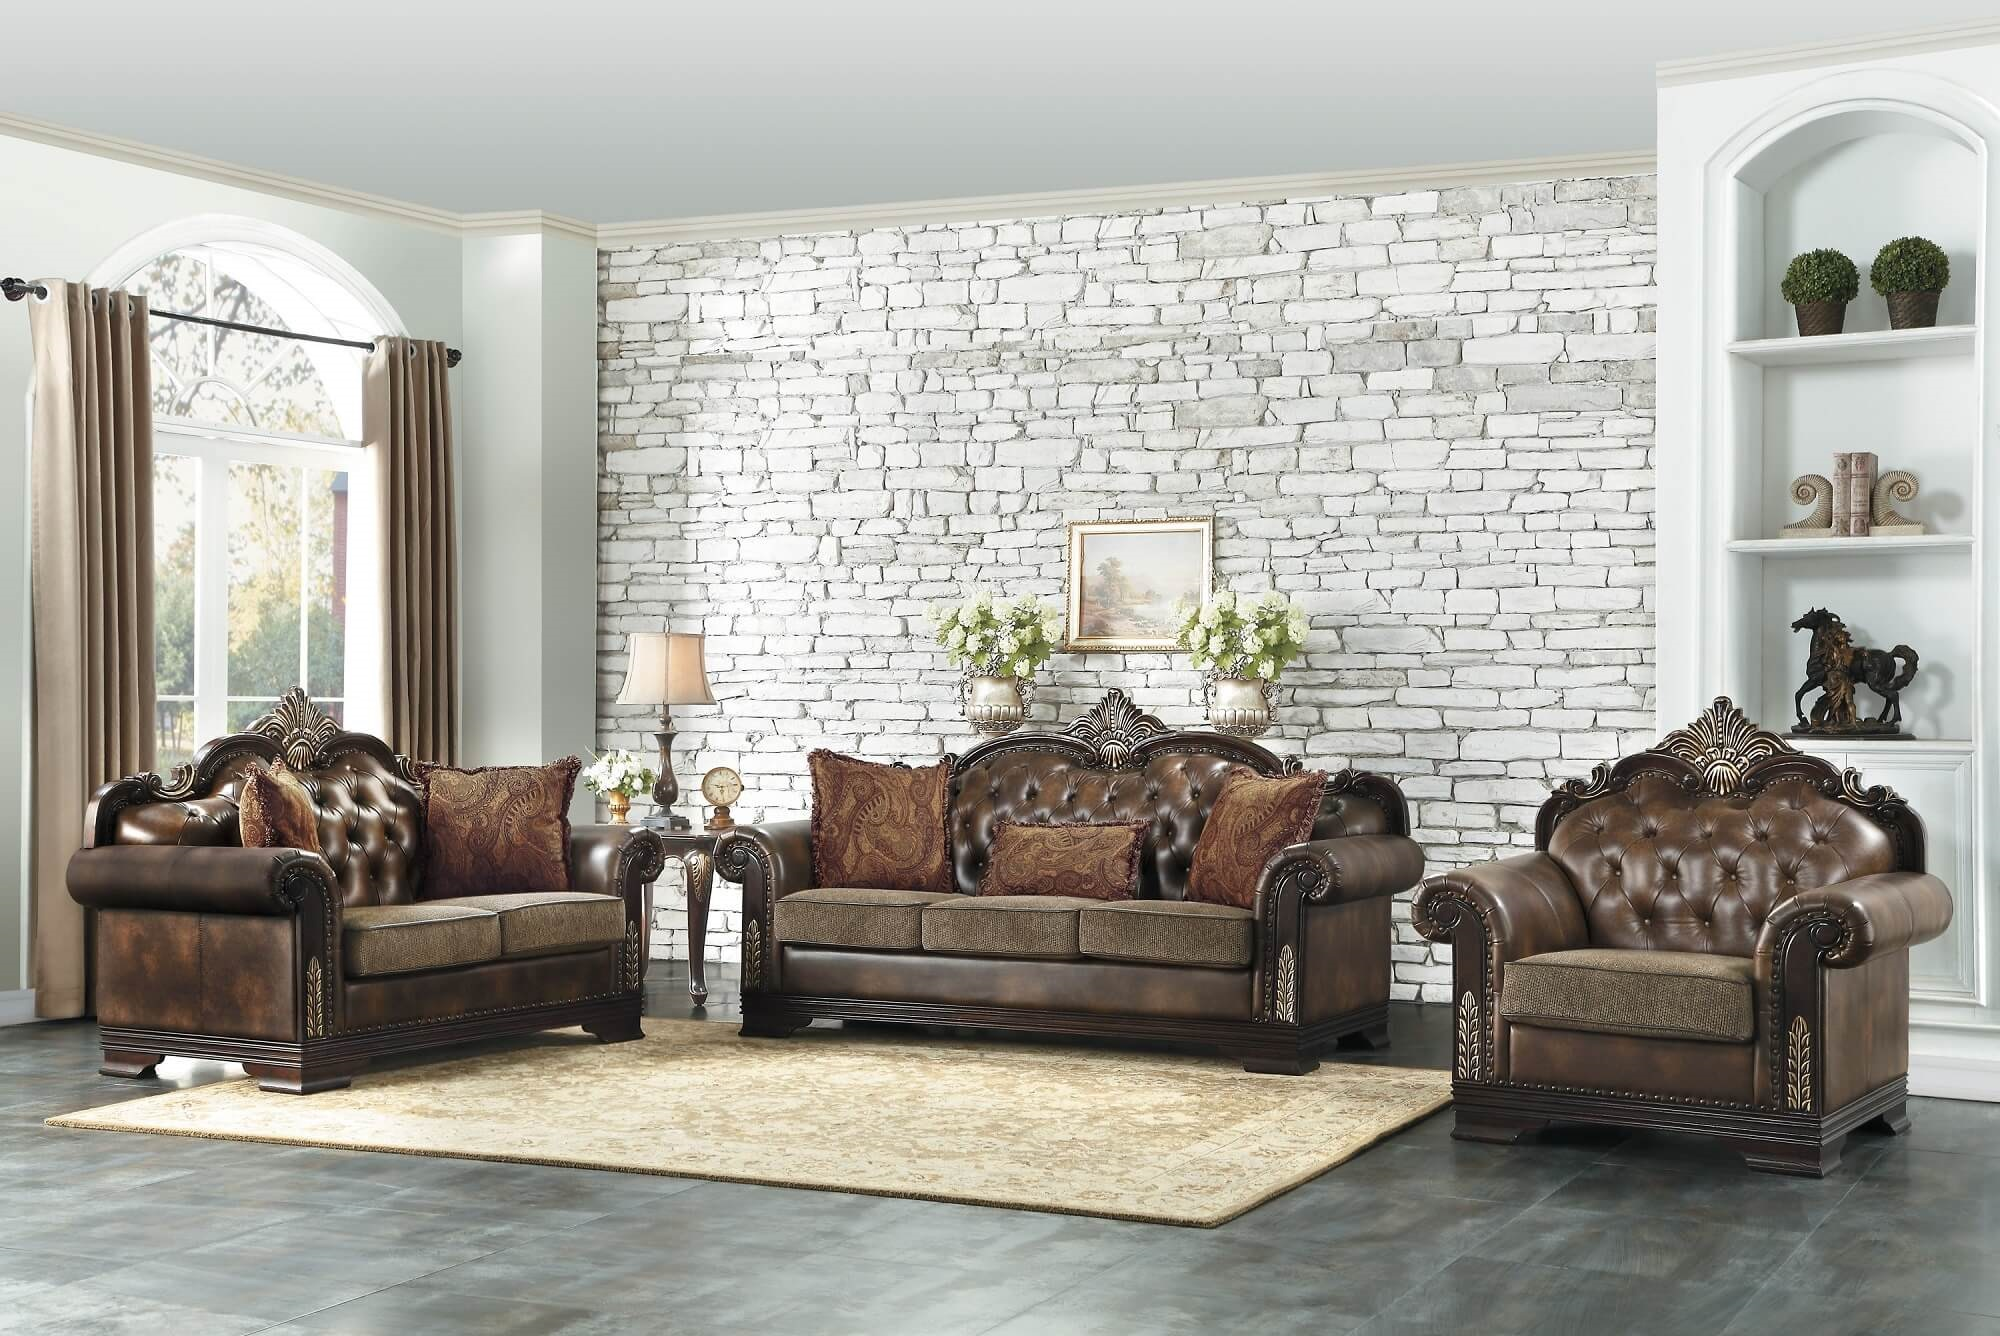 croydon traditional wood trim sofa set usa furniture online rh usafurnitureonline com seychelles wood trim sofa wood trim leather sofa